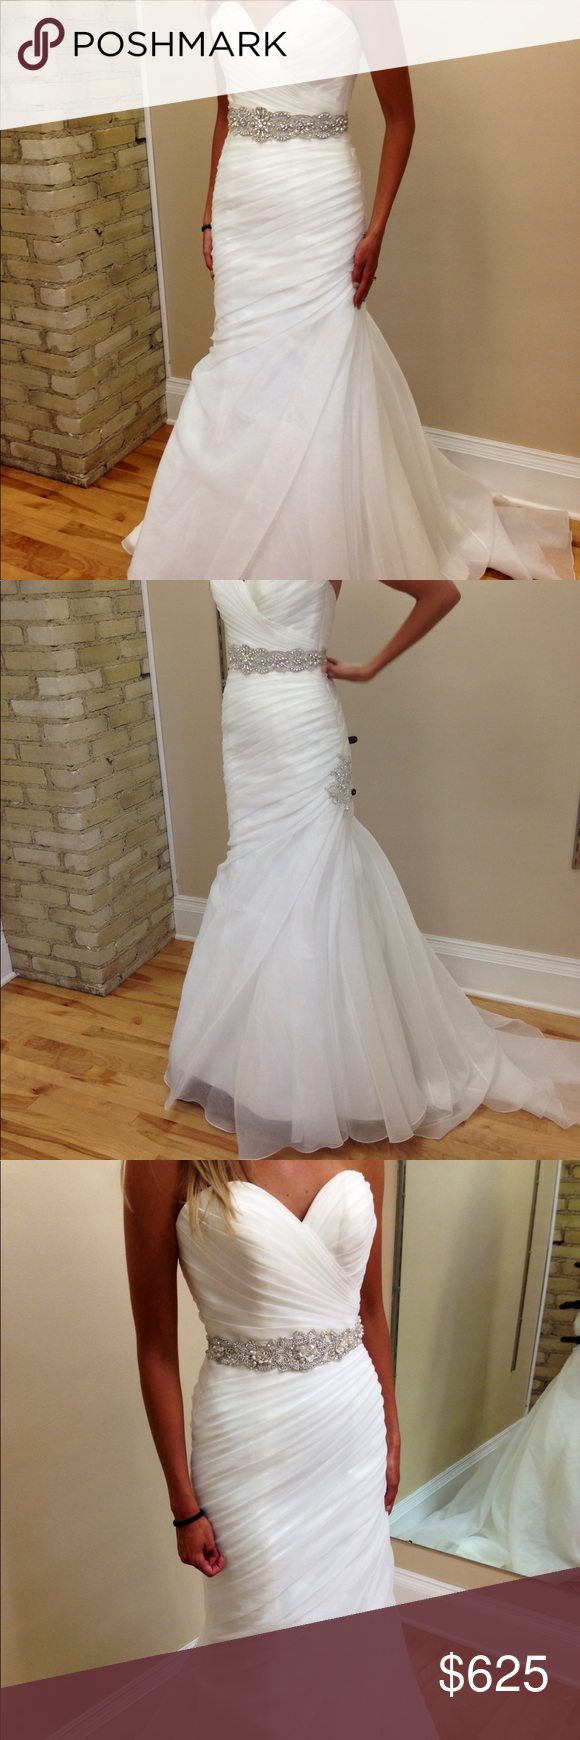 Wedding Dress Morilee By Madeline Gardner 1 000 From The Wedding Shoppe In St Paul Mn New With Tags Ivory Size 6 B Wedding Dresses Dresses Mori Lee Dresses